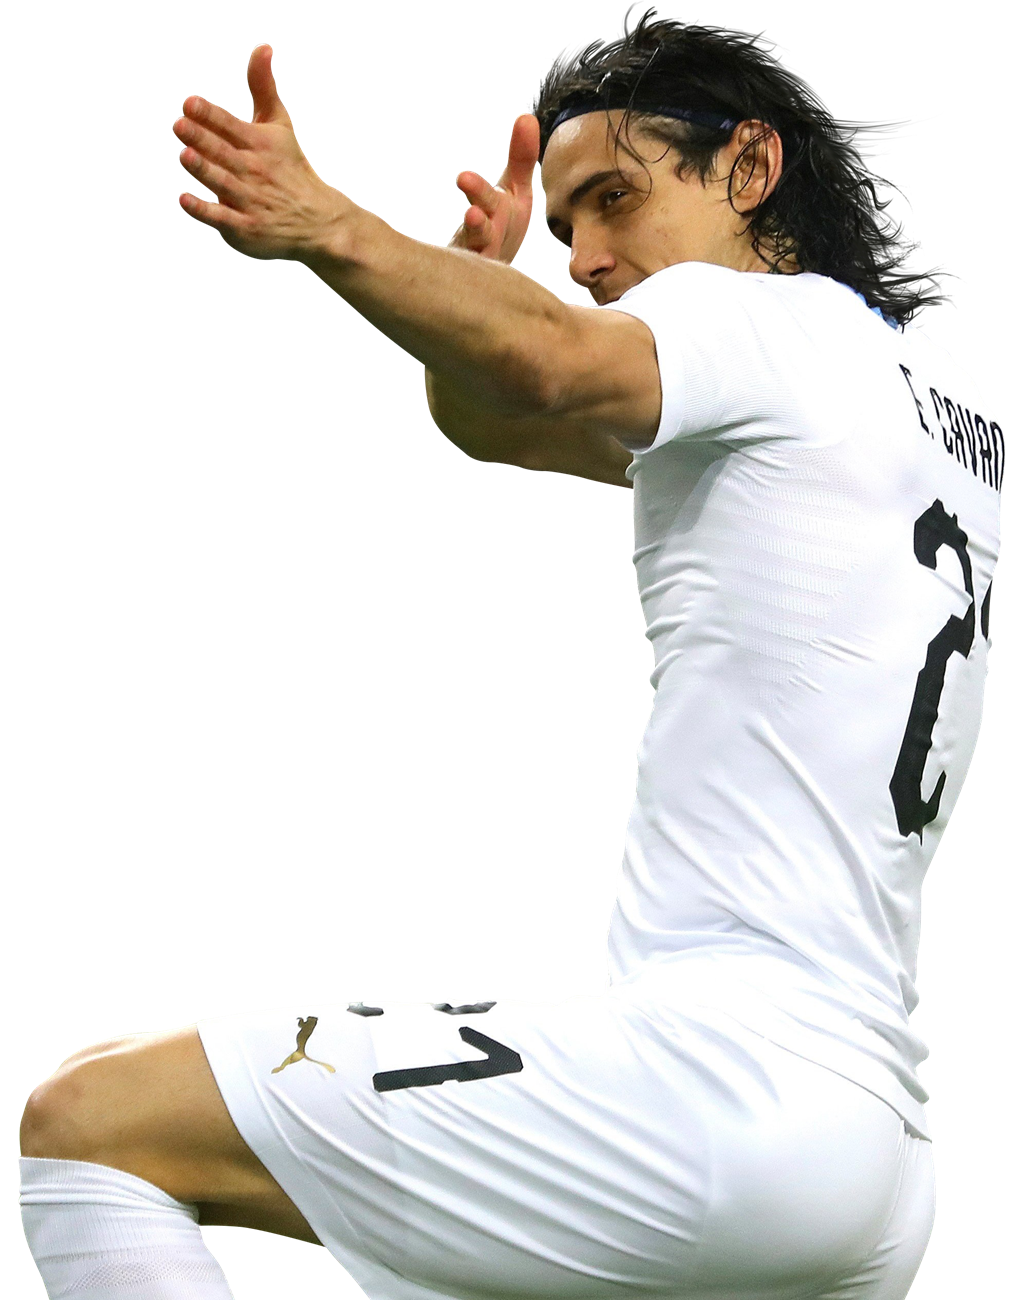 Edinson Cavani Render Uruguay View And Download Football Renders In Png Now For Free By Szwejzi April 16 2018 Football Sport Man Soccer News